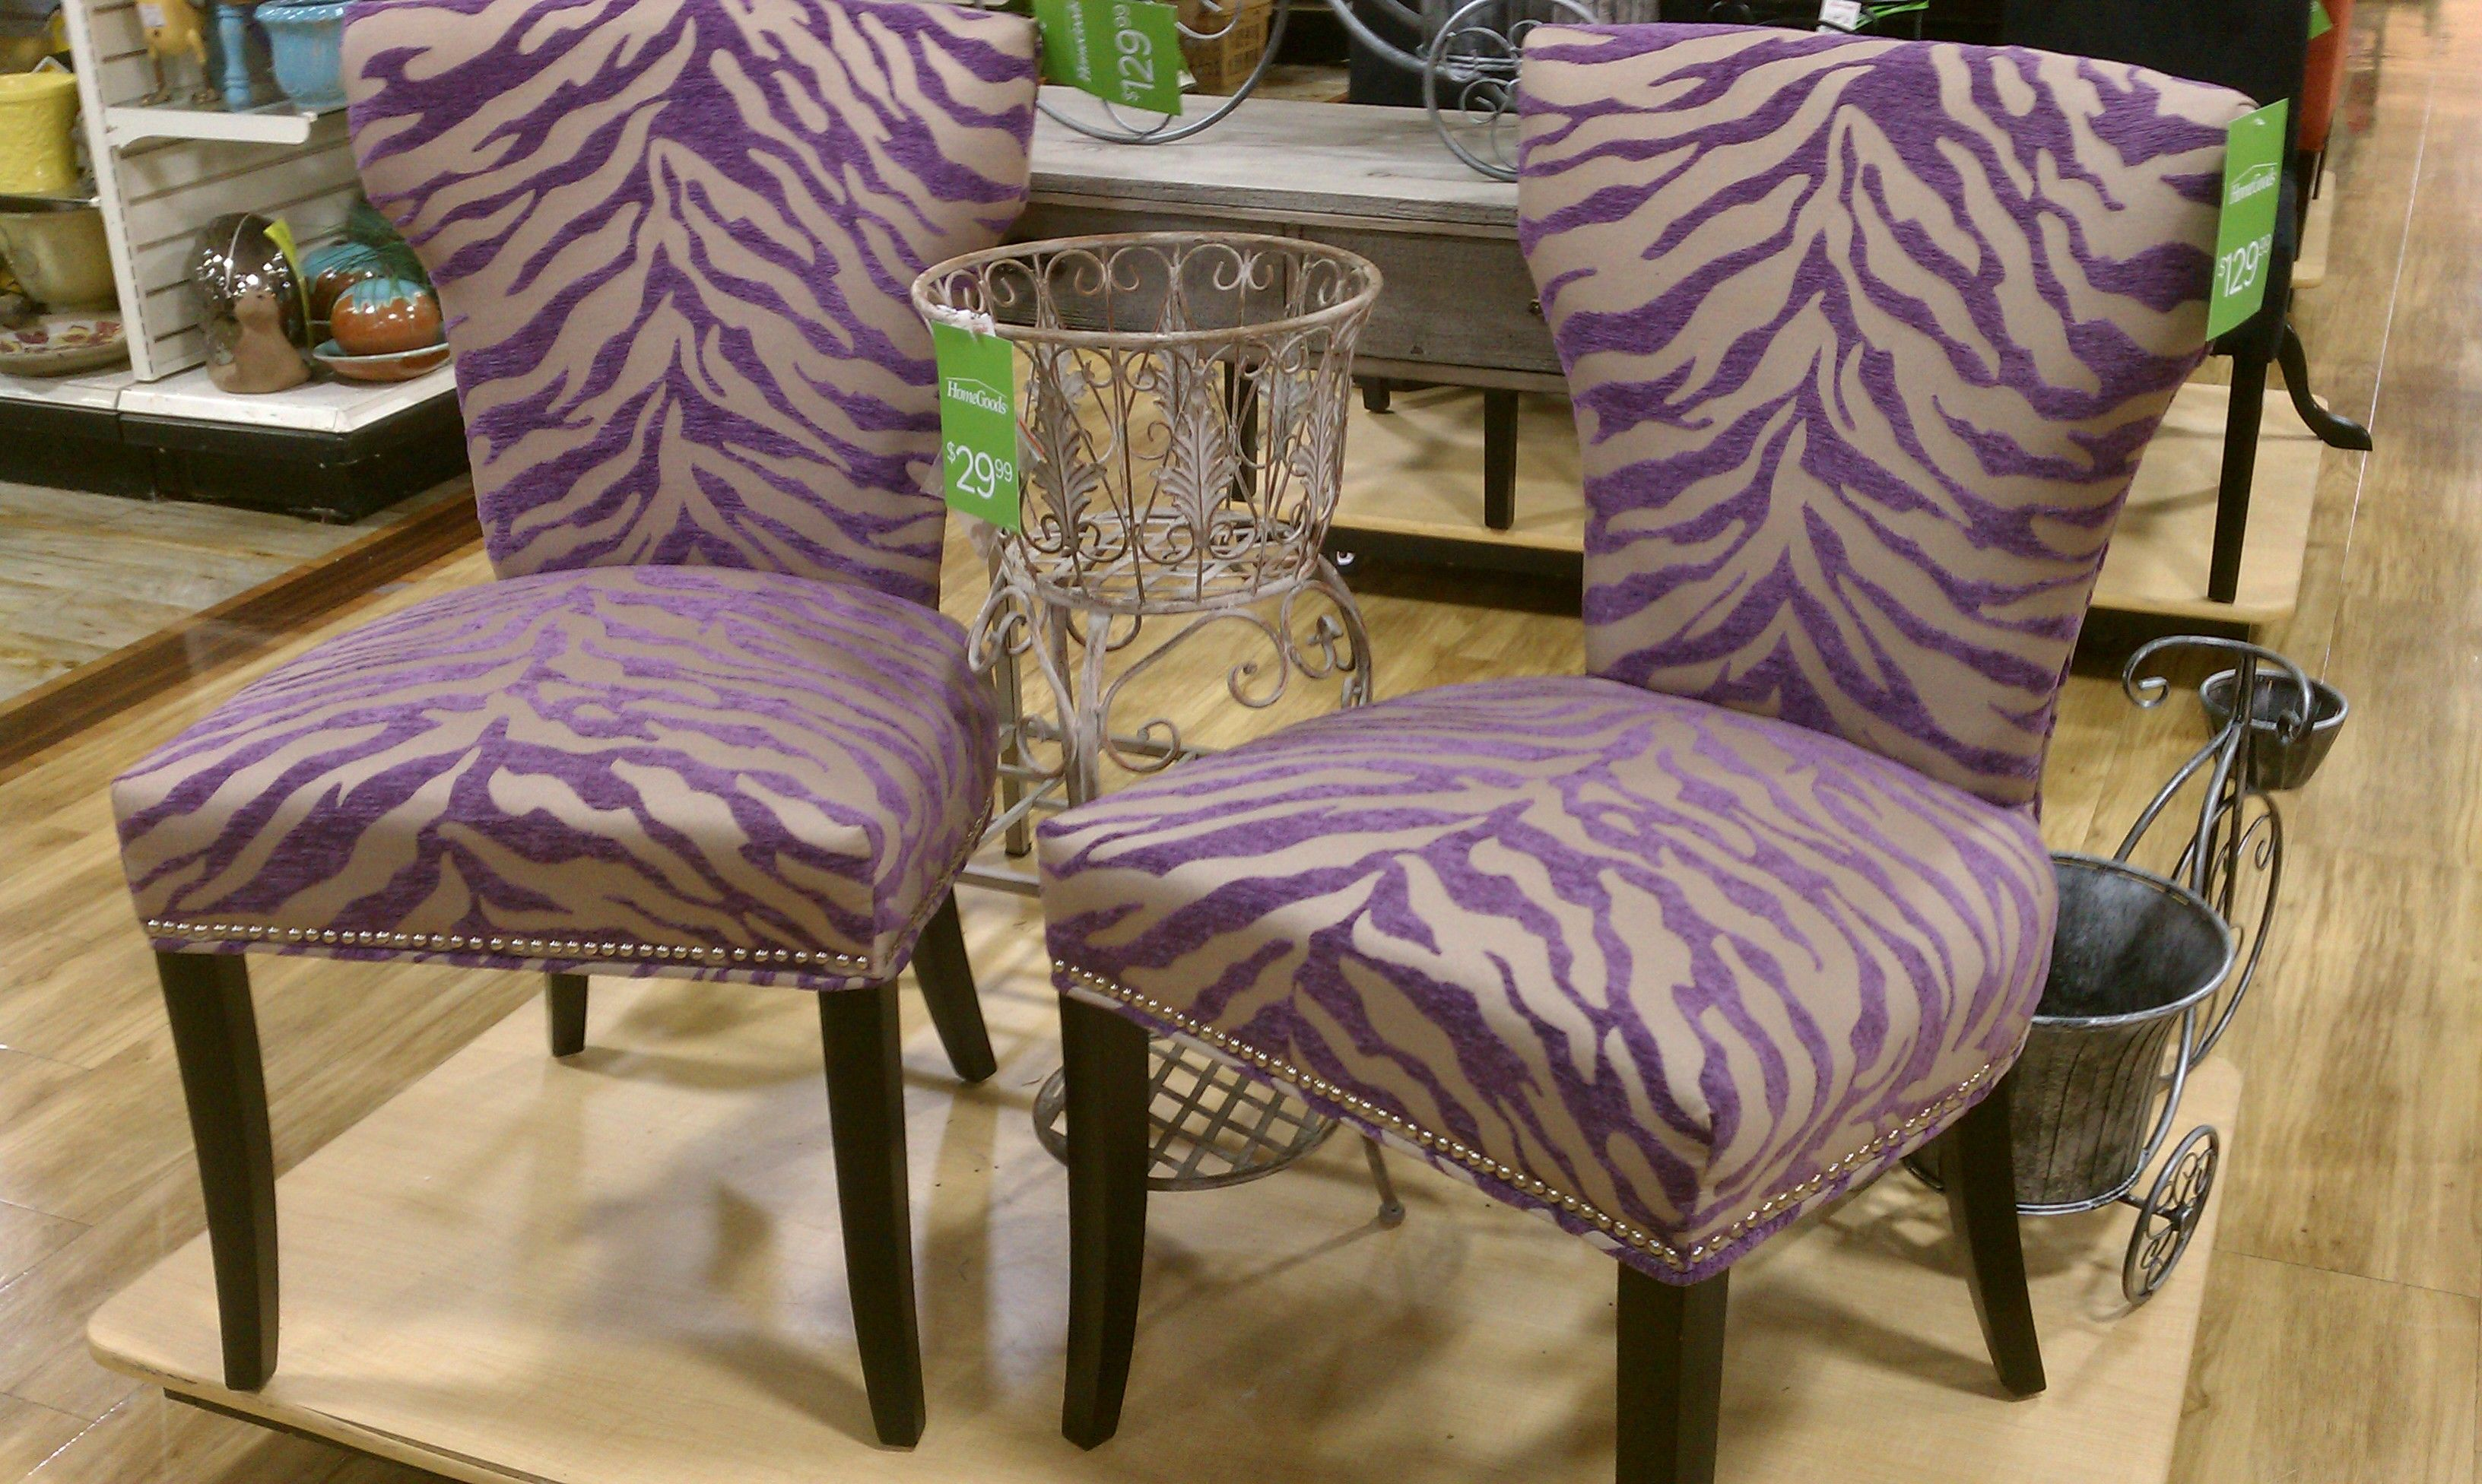 zebra print chairs | home goods | Pinterest | Home, Room ...